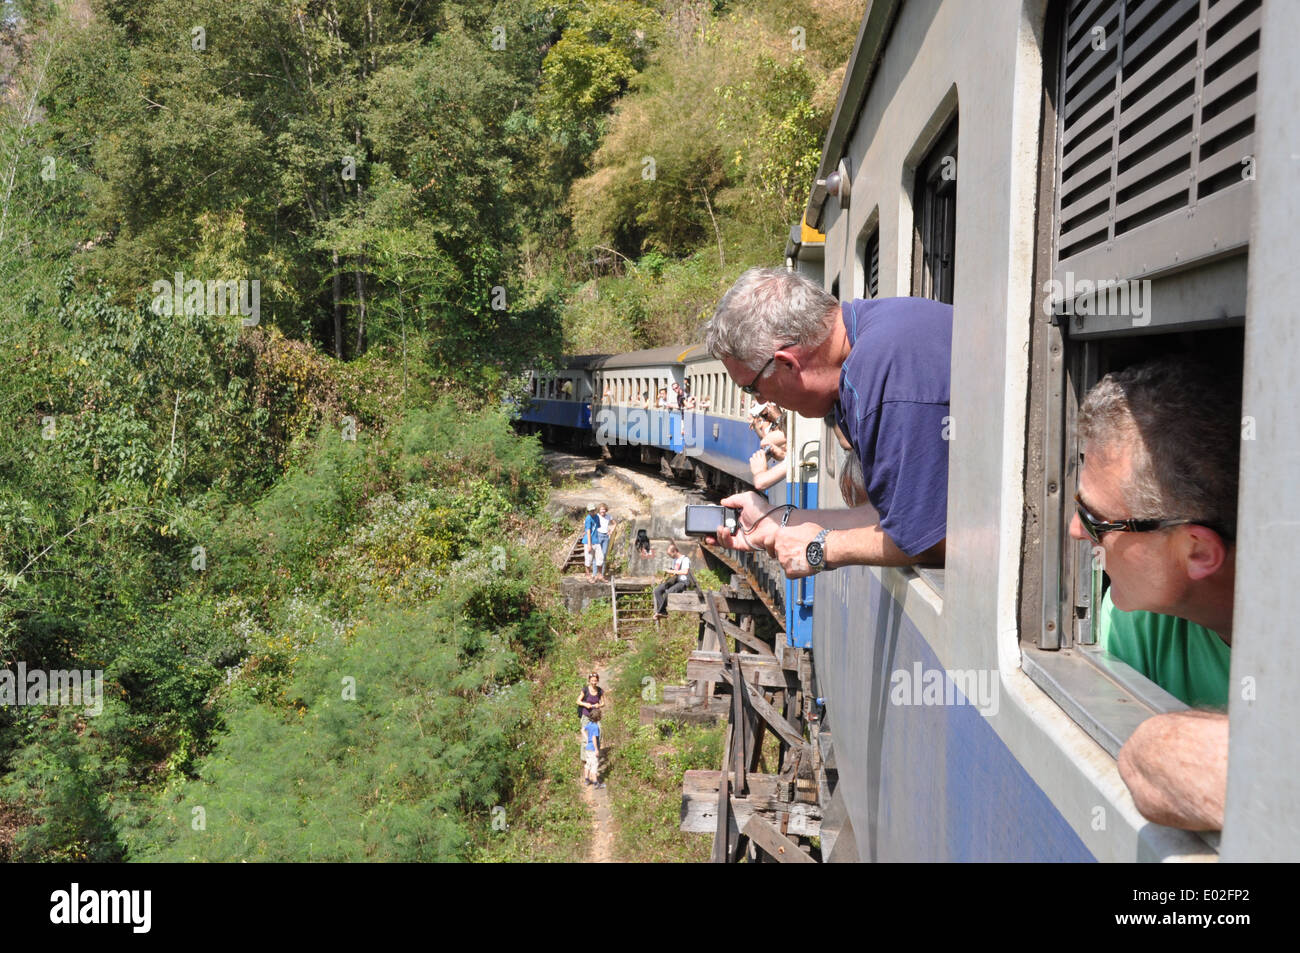 Tourists leaning out of the windows of a train on the Thai - Burma Railway, Thailand. - Stock Image